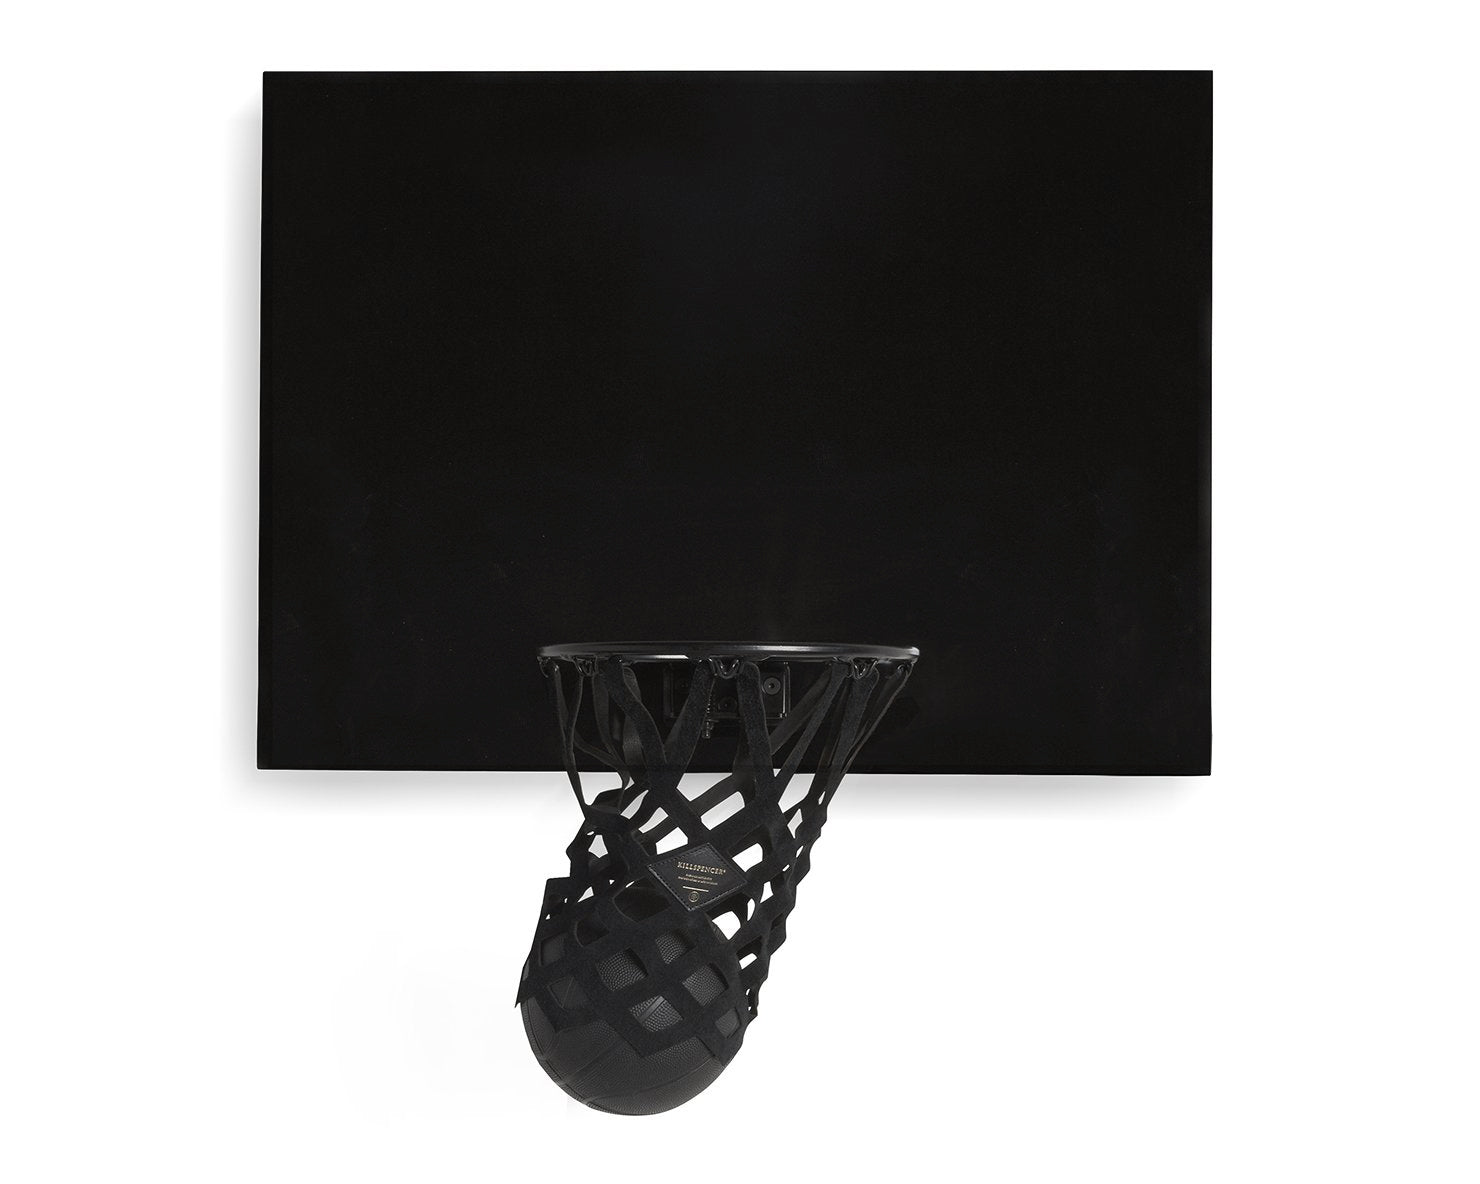 INDOOR MINI BASKETBALL KIT 2.0 | KILLSPENCER® - Black Metal and Matte Black